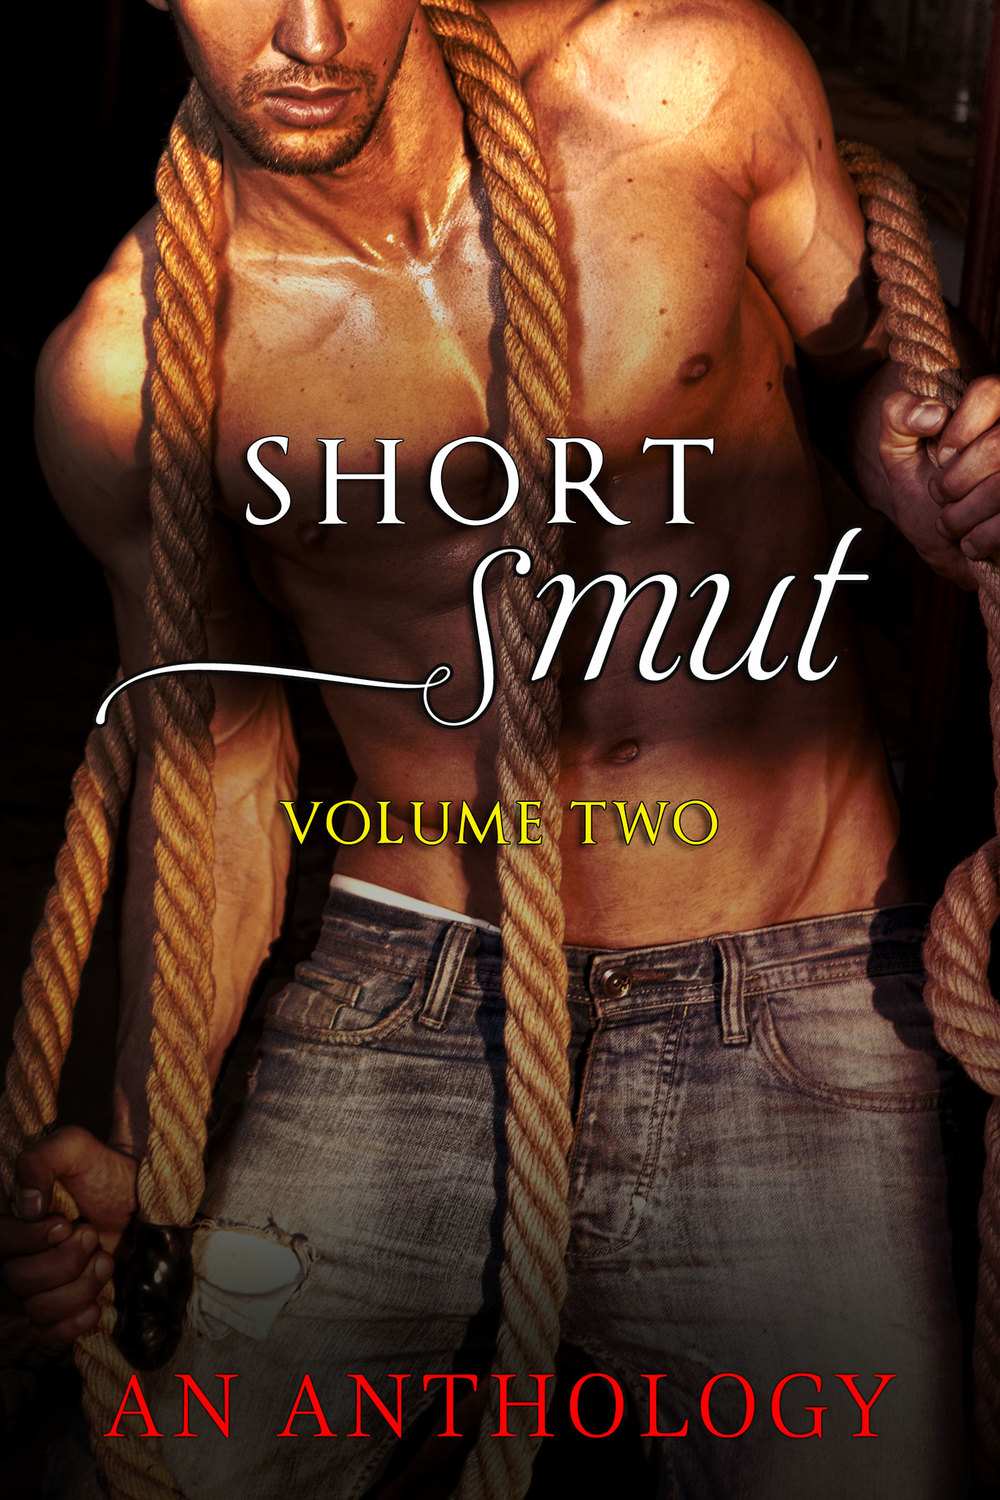 ShortSmutVolume2New-1600x2400.jpg